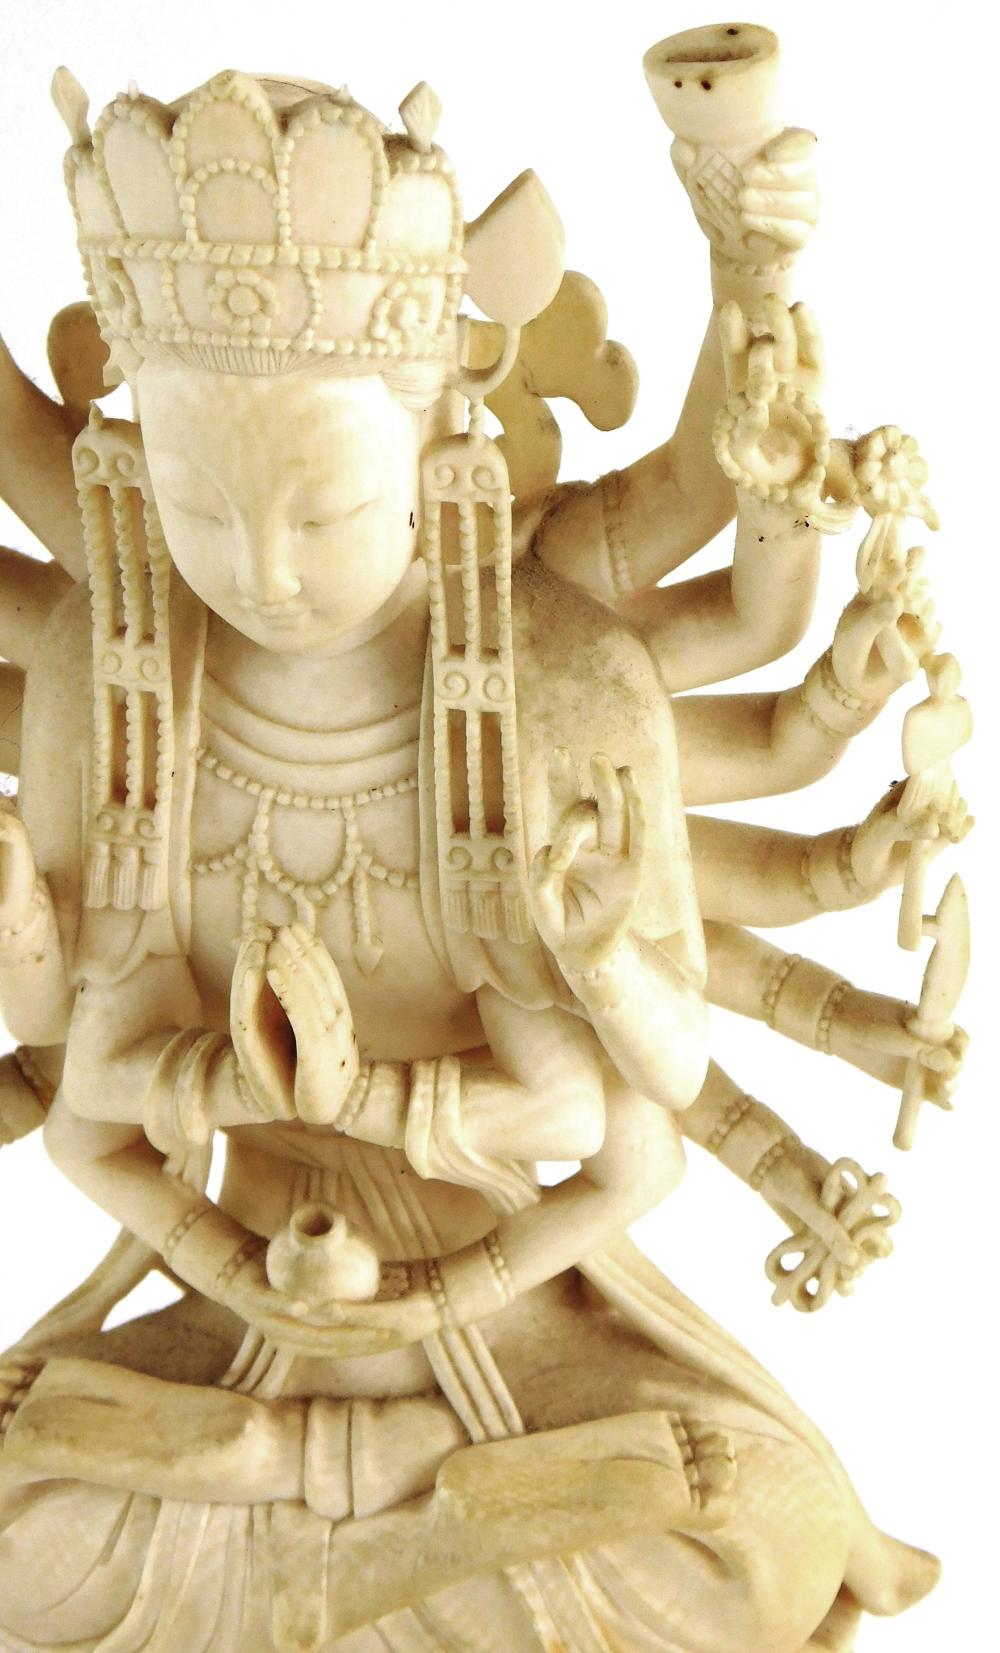 ASIAN: Carved ivory Hindu or Buddhist deity, early to mid-20th C., depicted with eighteen arms and seated on lotus flower, ornately...